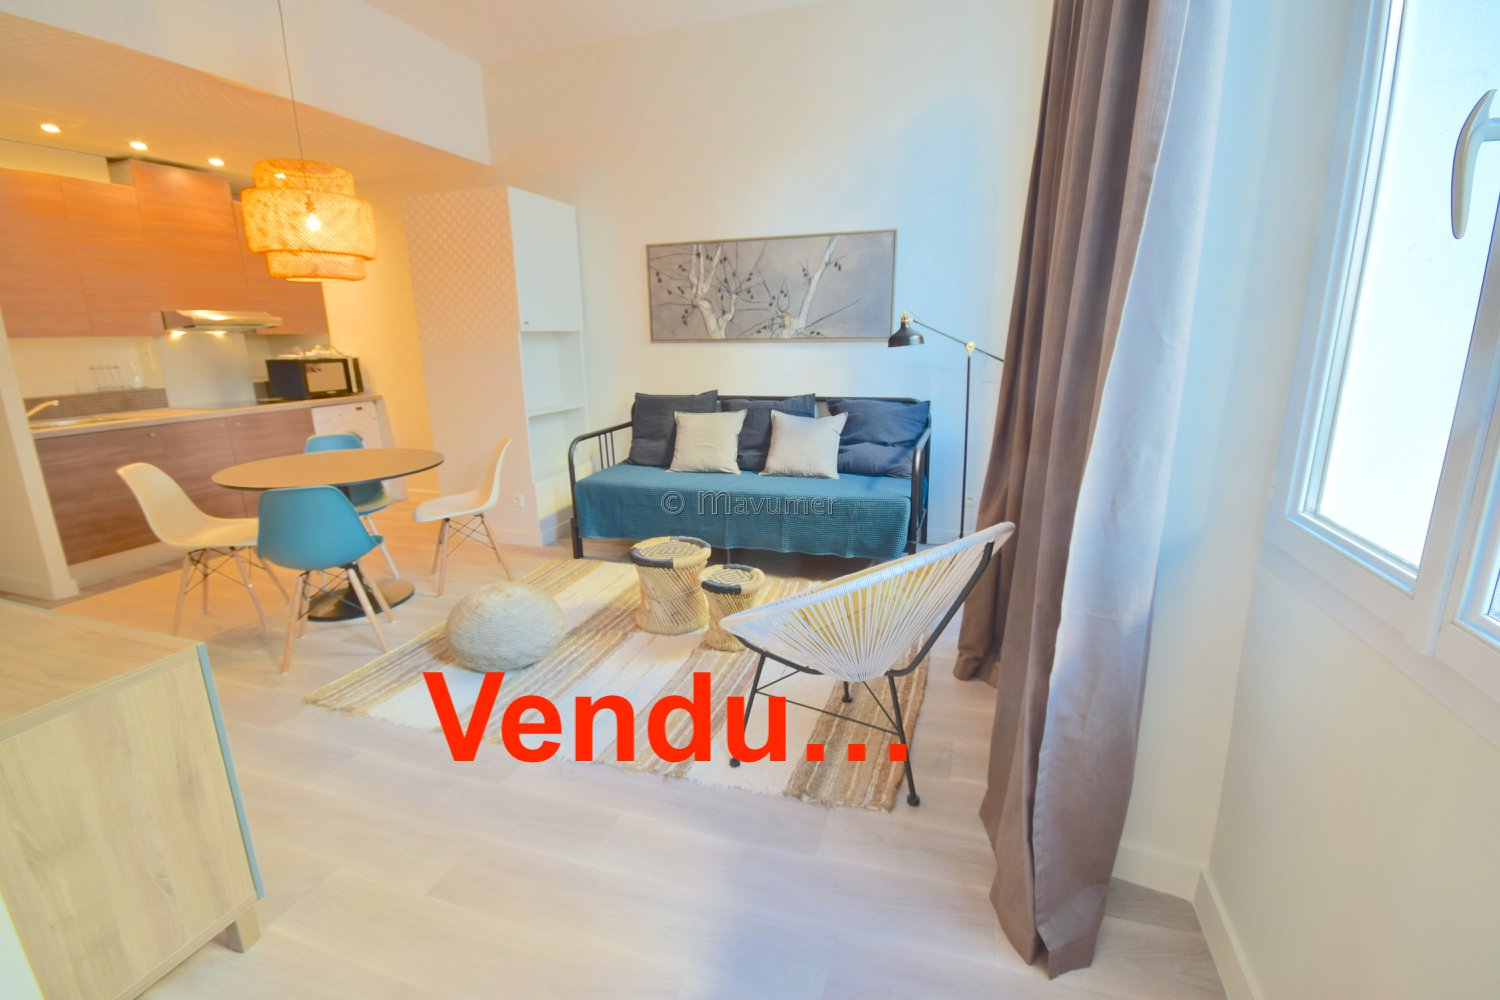 APPARTEMENT T2 PARADIS 13006 MARSEILLE